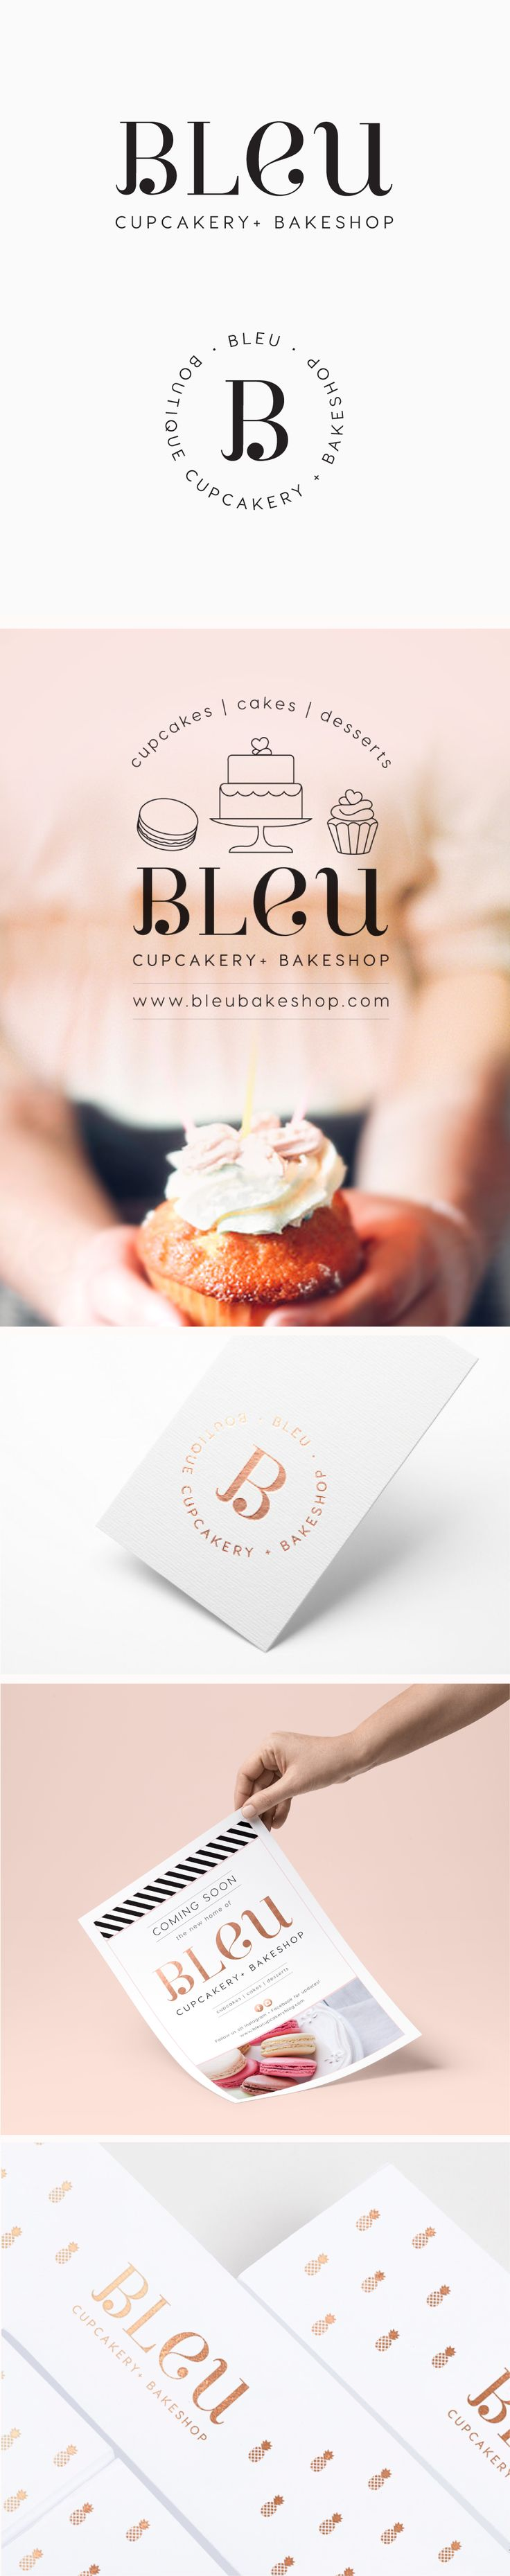 Bleu is a bakery based in Kailua-Kona, Hawaii who specialise in the creation of gourmet cupcakes, cakes and mini deserts. The owners of Bleu requested Inkee Press create a simplistically elegant logo  (Simple Elegant Business Card)